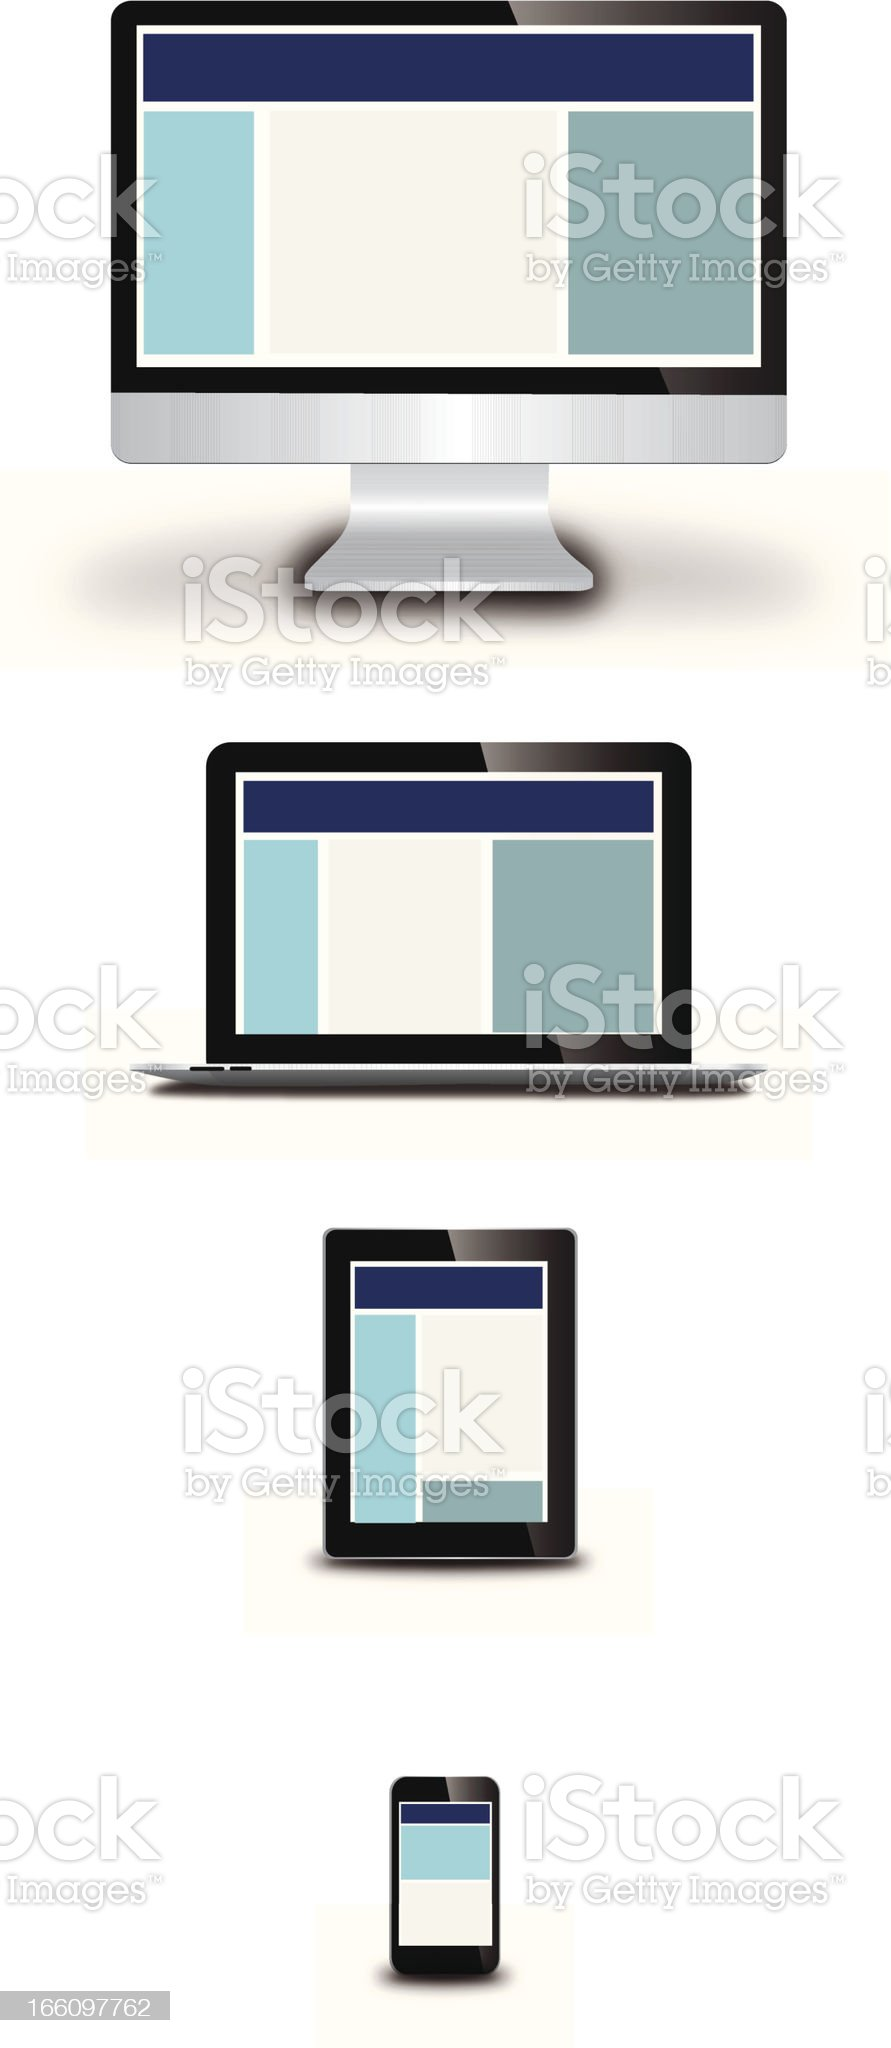 Icons representing responsive web design on various devices royalty-free stock vector art